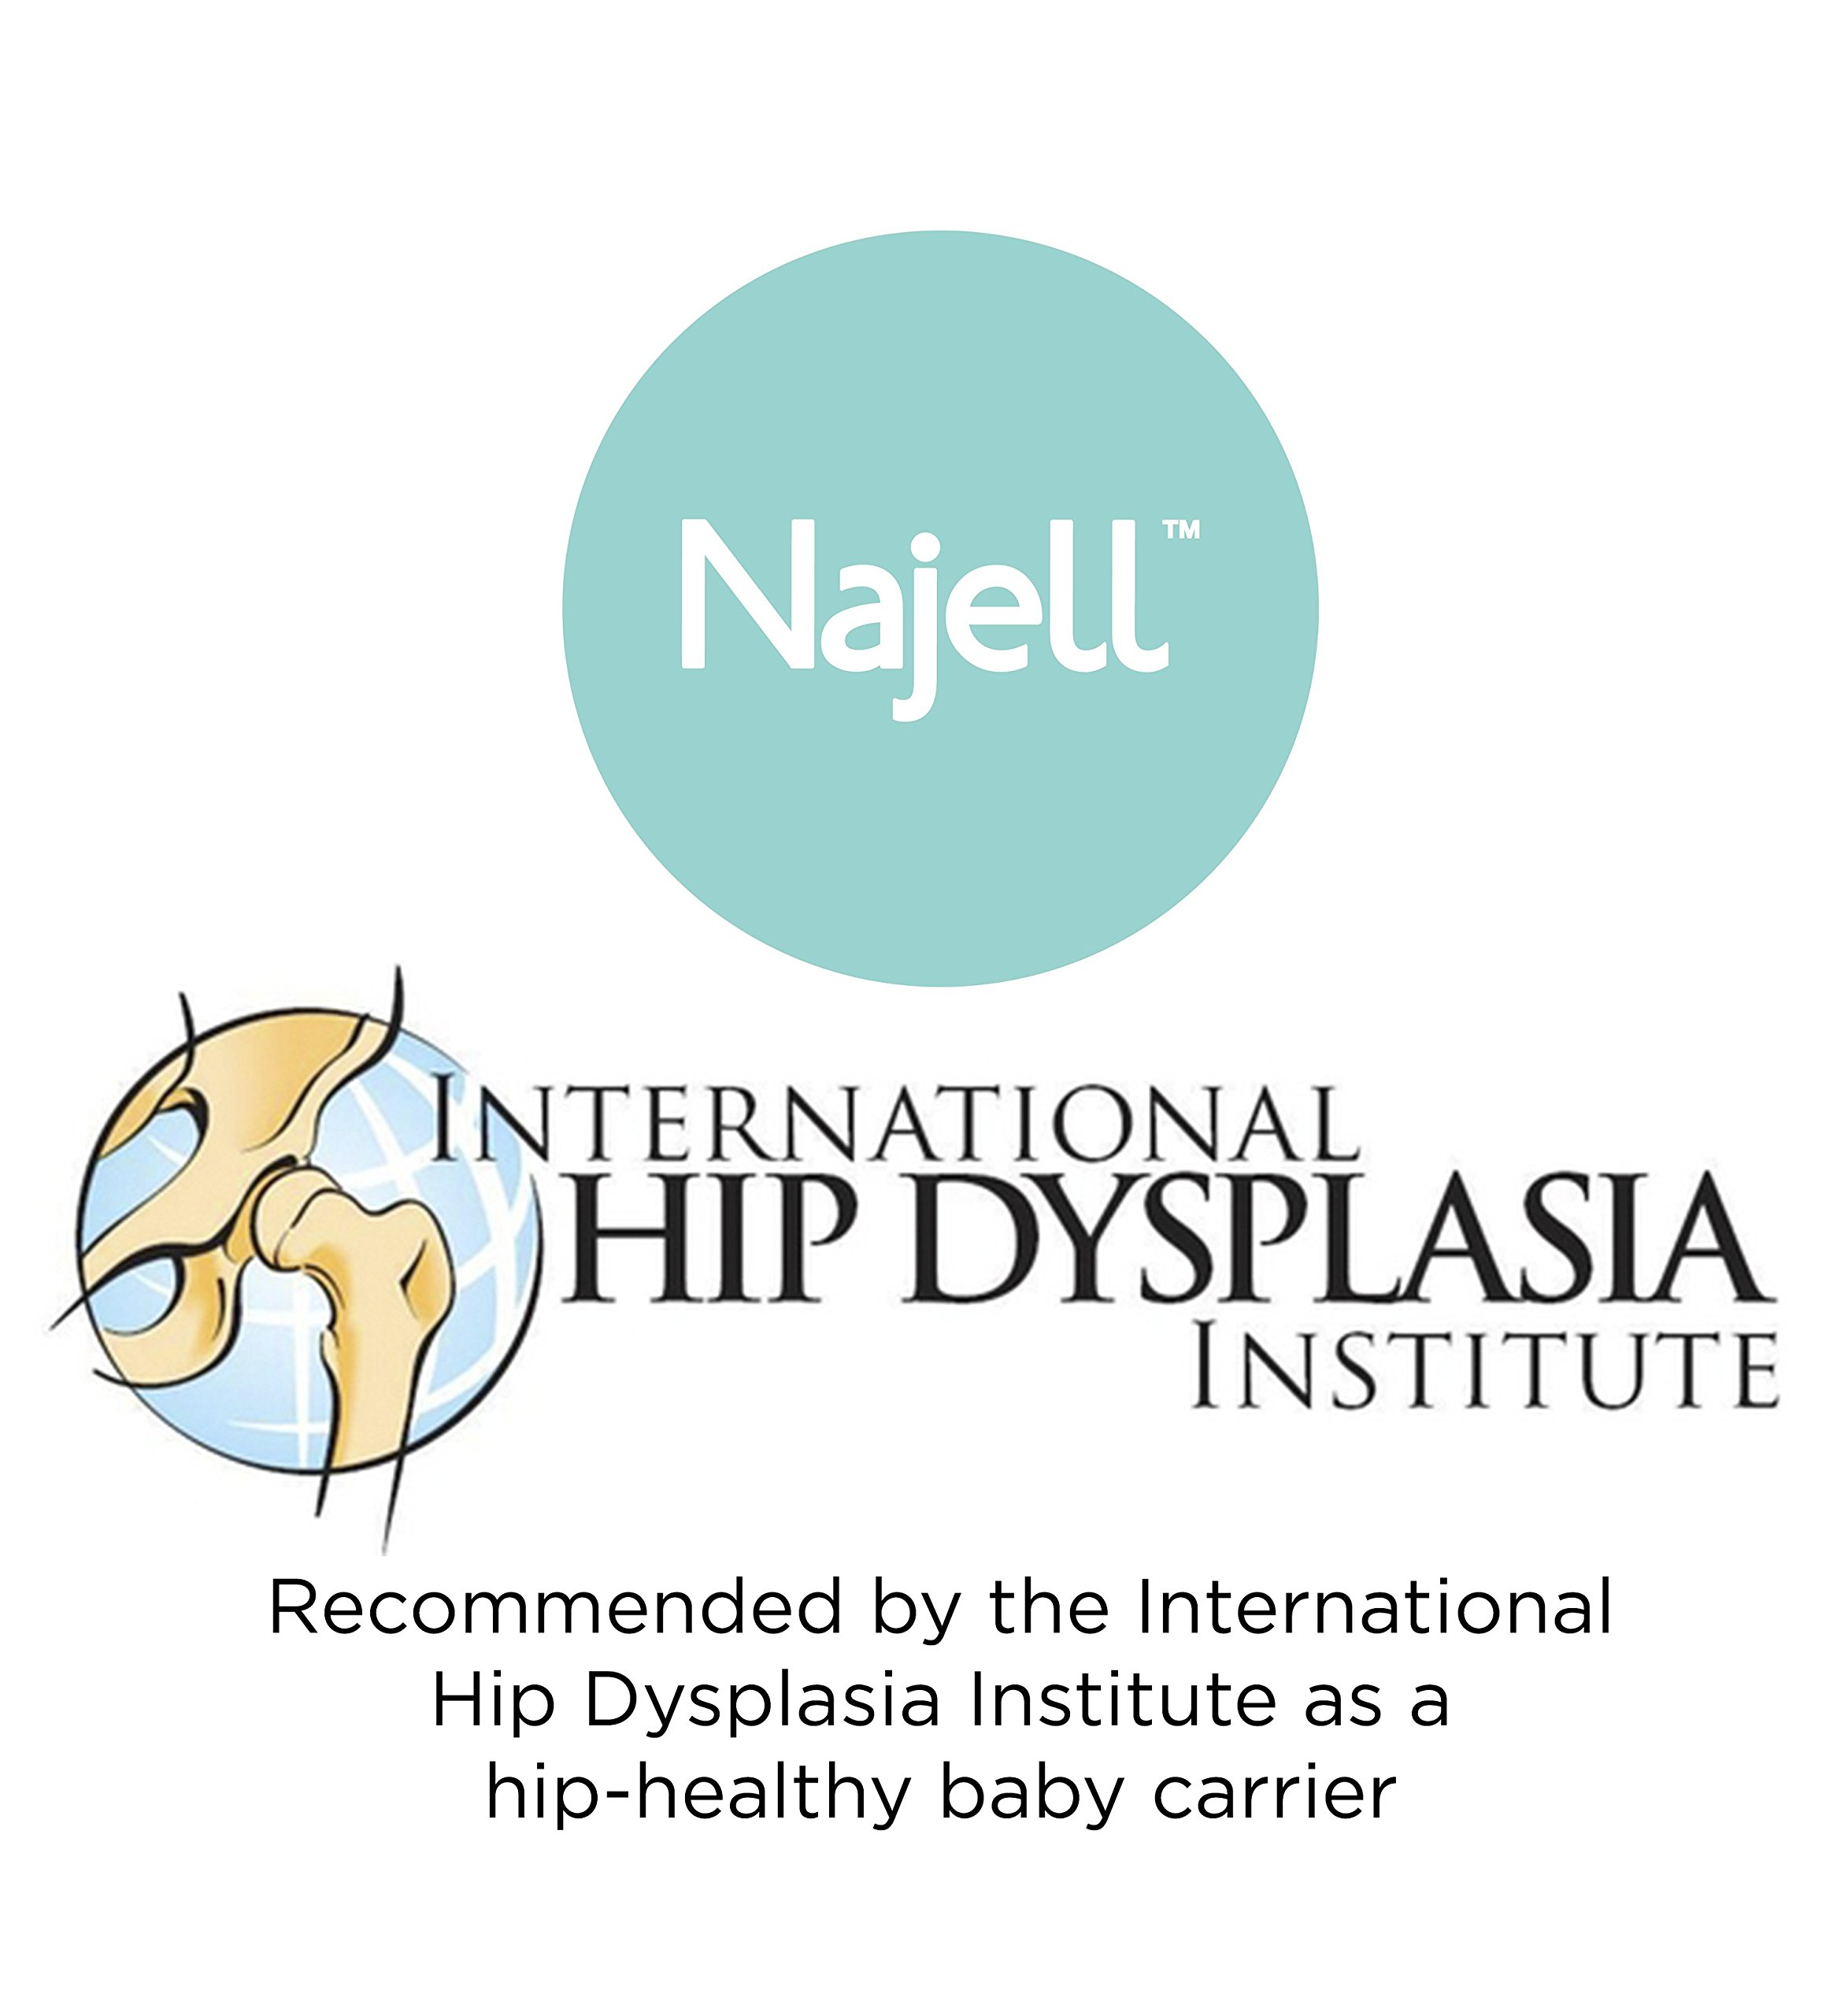 Najell Omni Active Mesh Baby Carrier with Hip Seat, Brilliant Black Béaba New-born ergonomic position and hips seat from 6 months. Market leading weight distribution with hip seat, recommended by the international hip dysplasia institute as a hip-healthy baby carrier Weight: 3, 5 to 15 kg and age: new-born to 3 years. 3